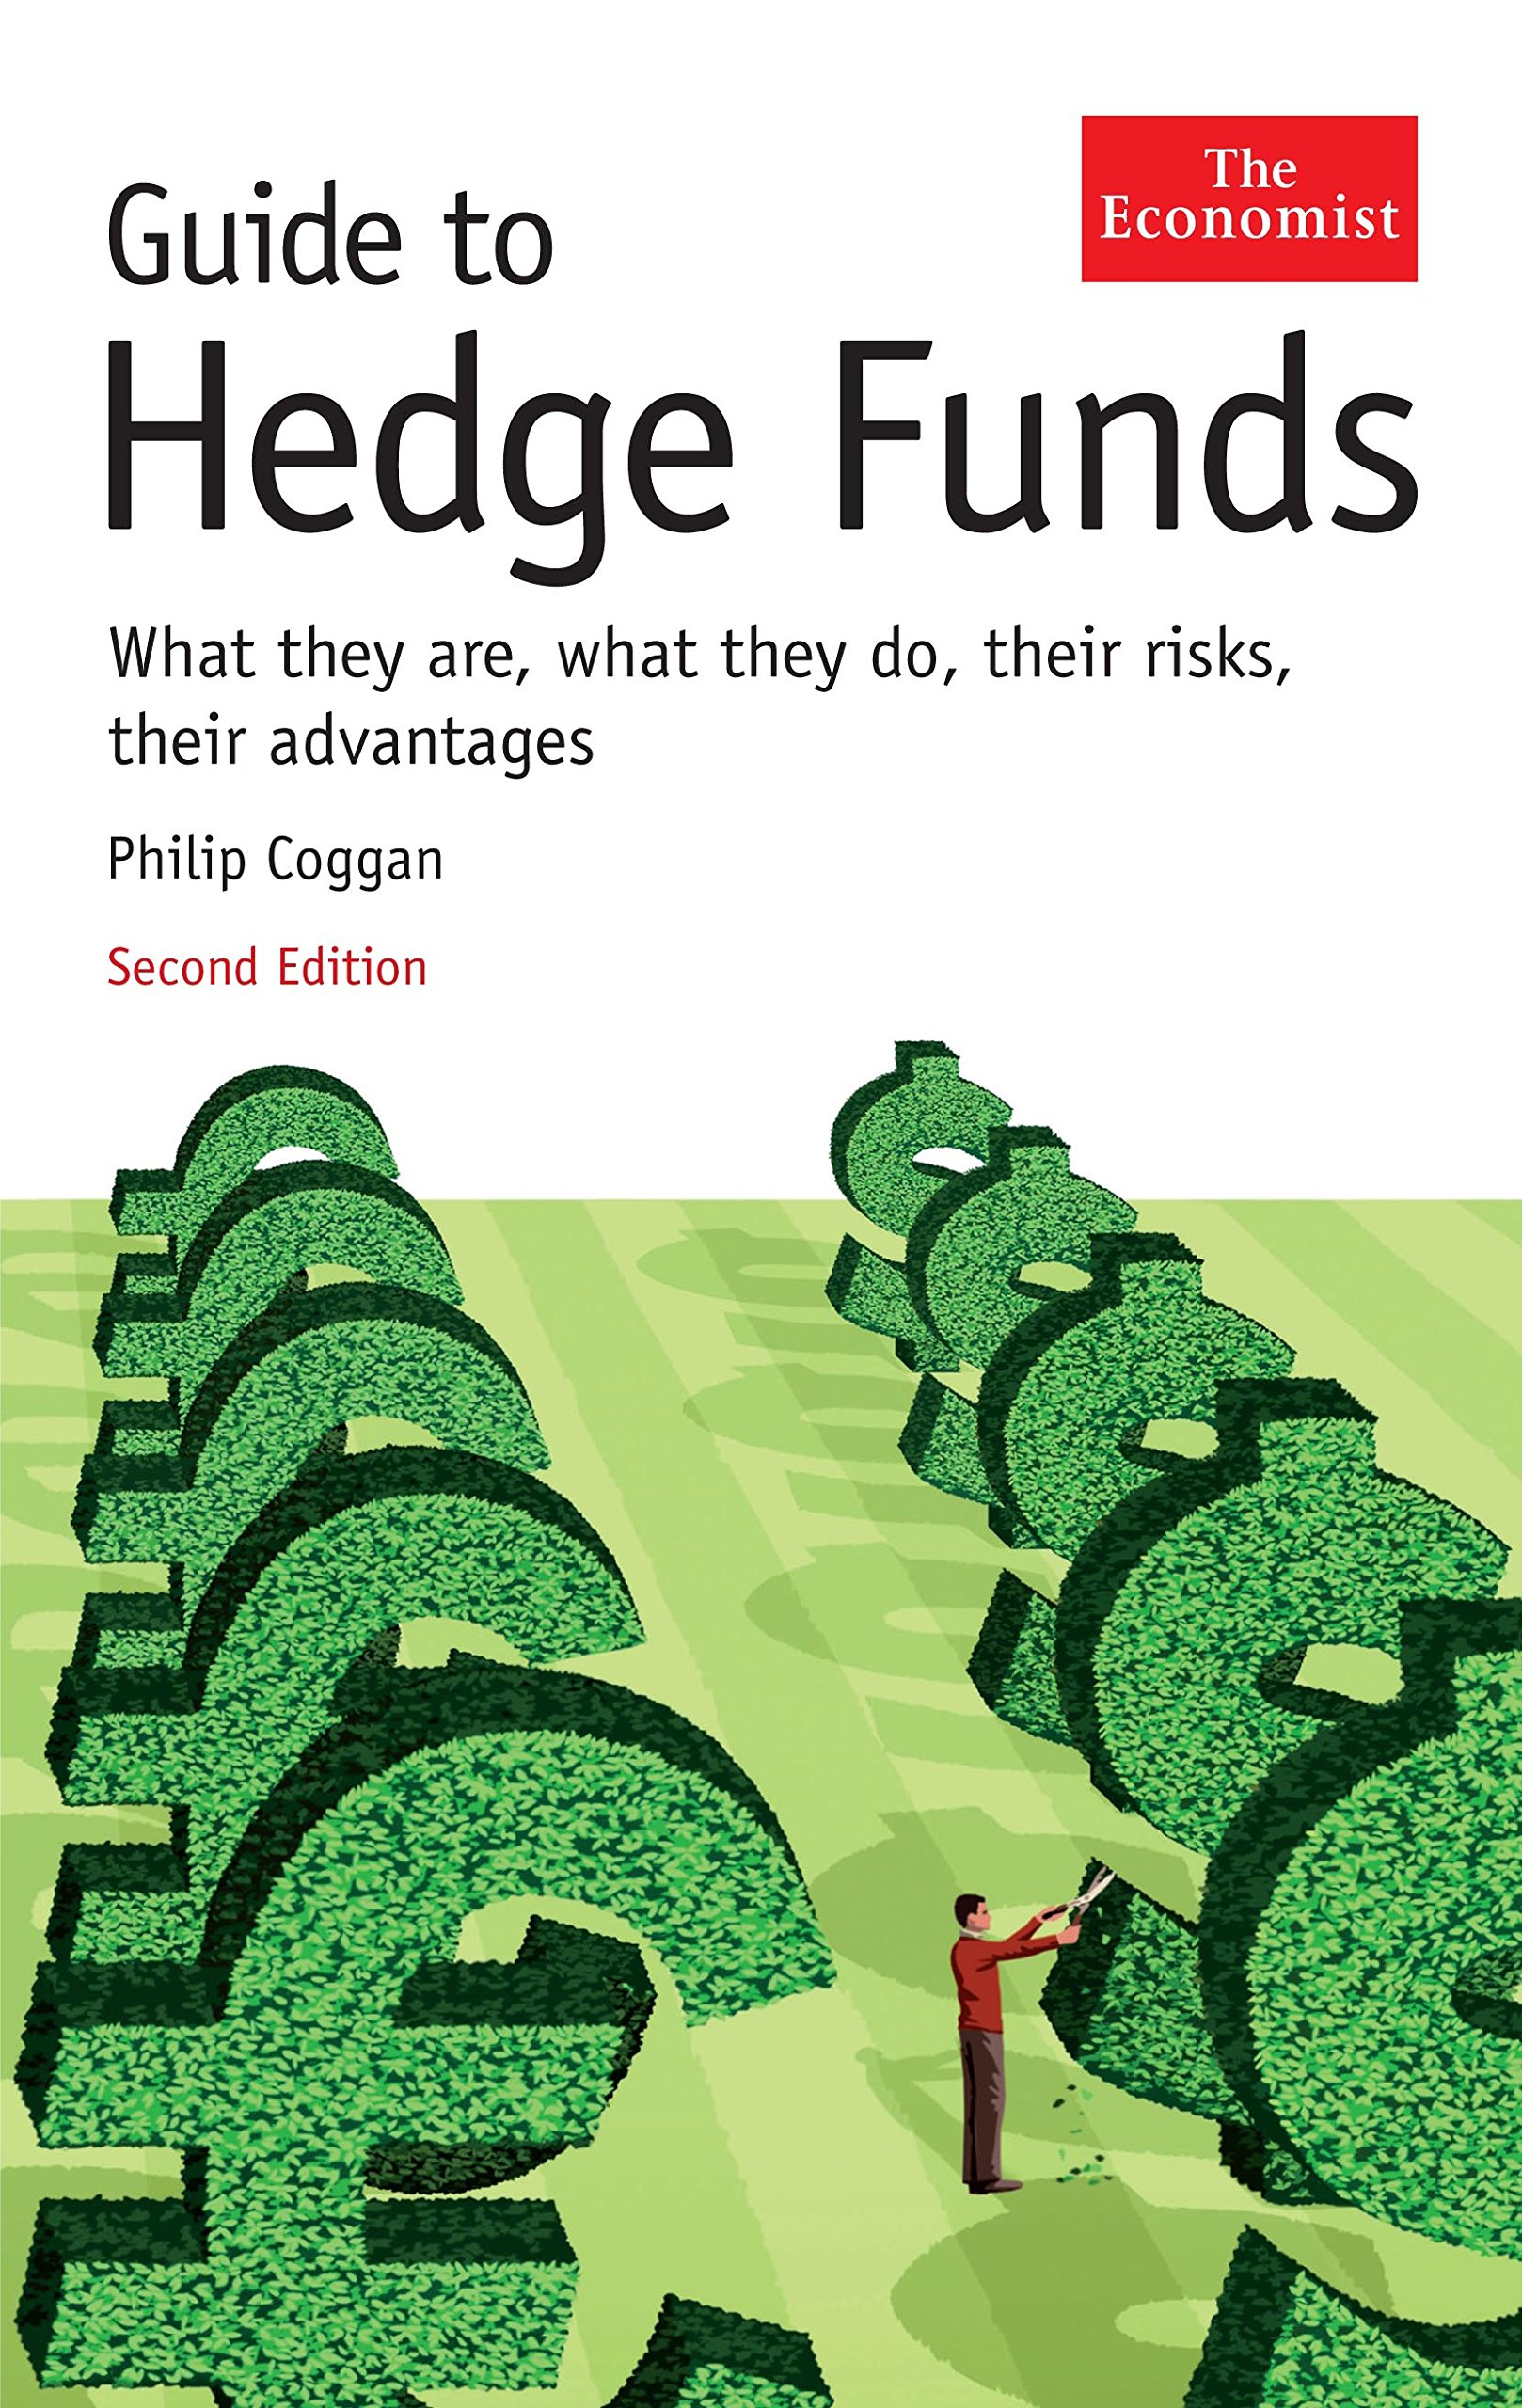 Buy The Economist Guide to Hedge Funds Book Online at Low Prices in India | The  Economist Guide to Hedge Funds Reviews & Ratings - Amazon.in